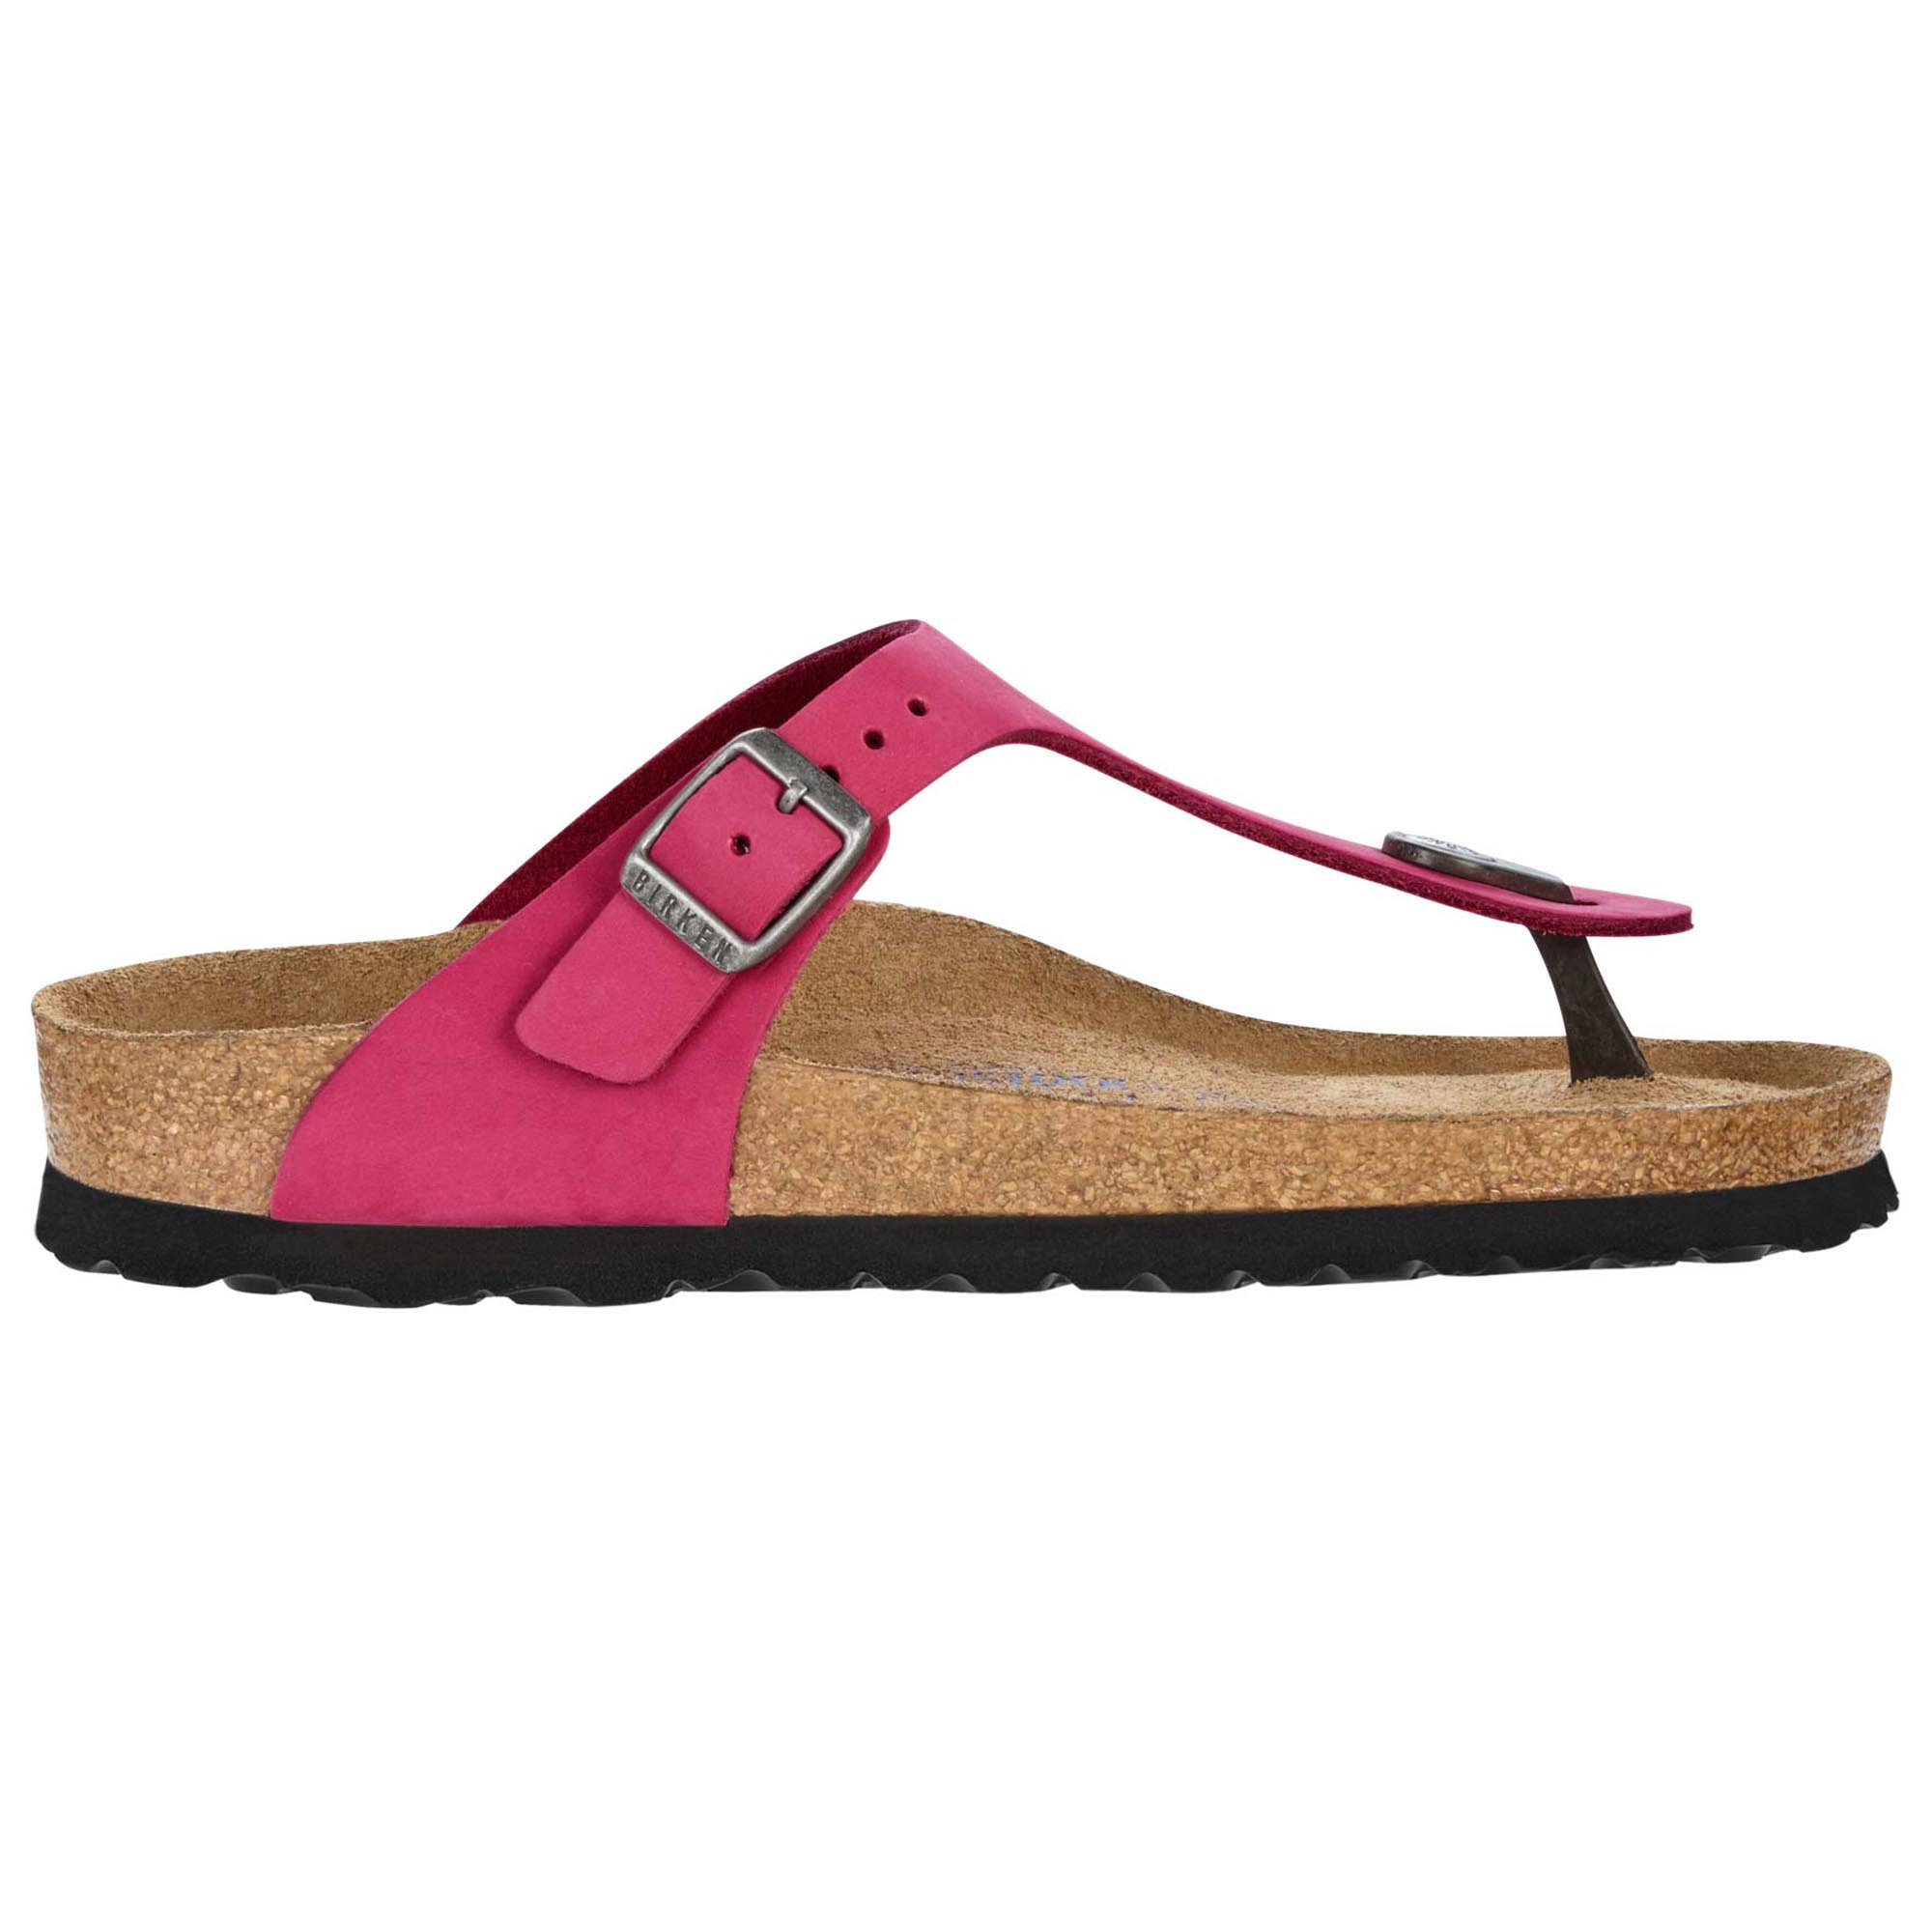 Gizeh Nubuck Leather Pink